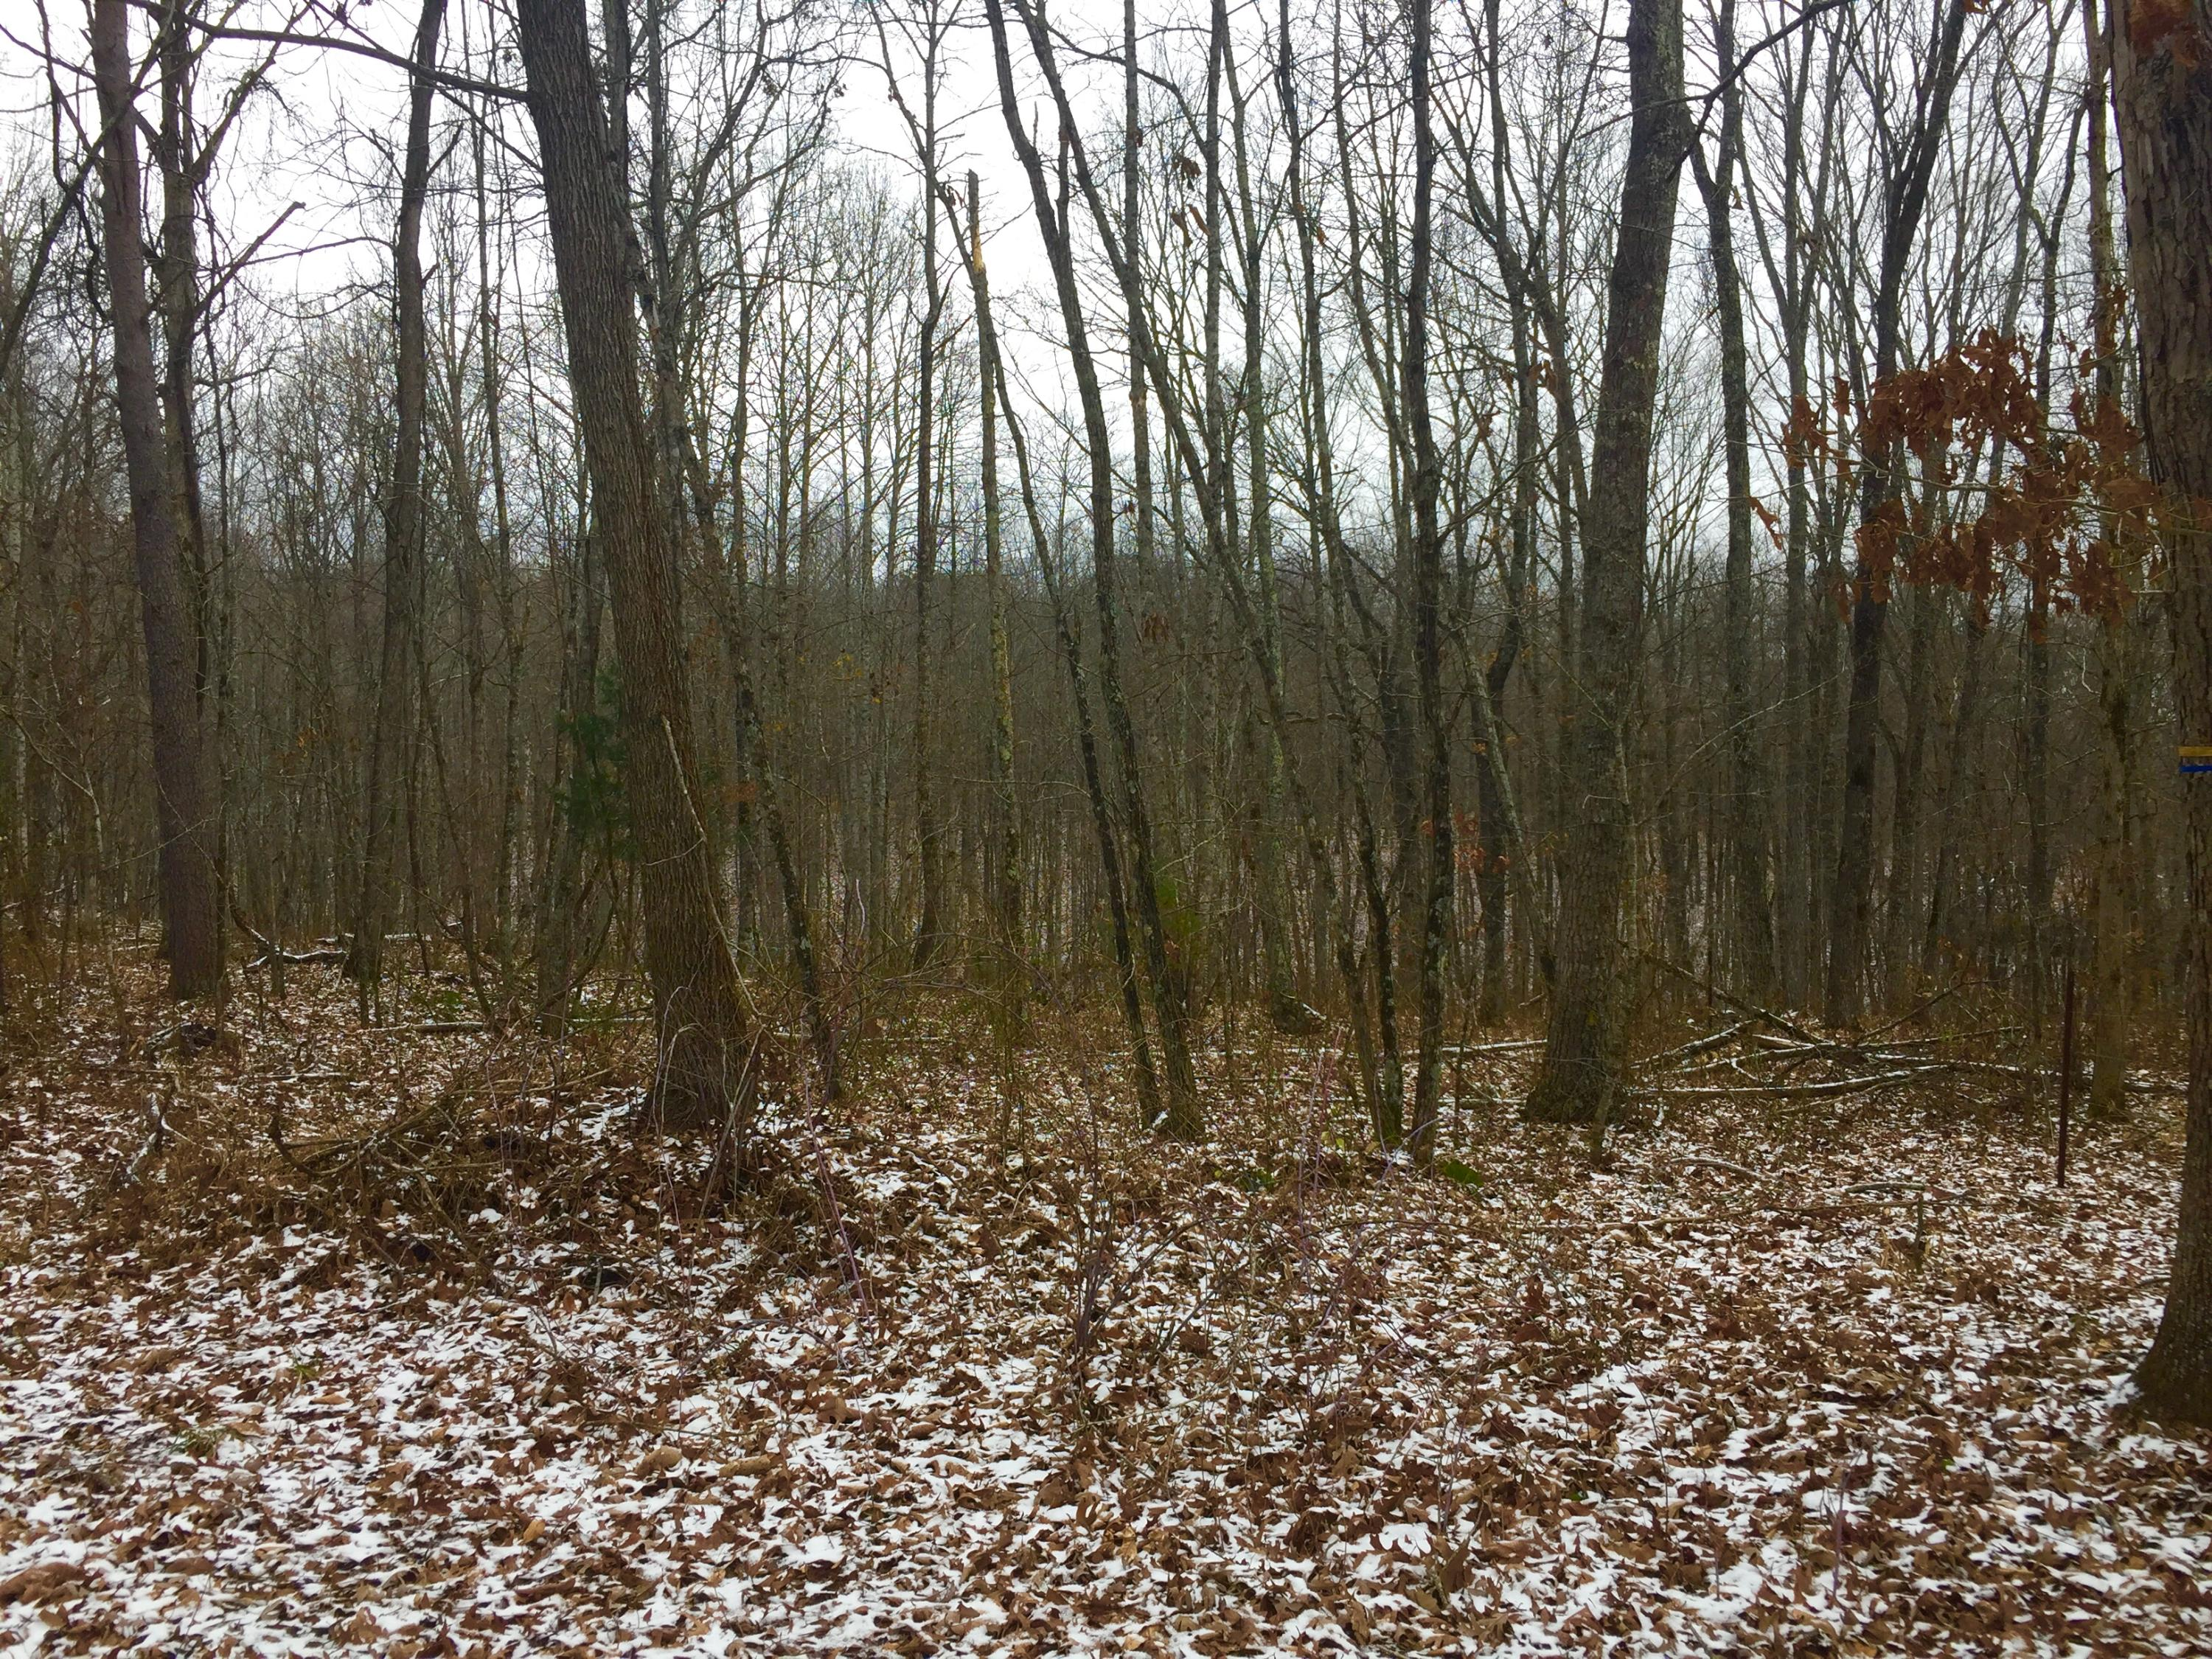 Blaylock Rd, Crossville, Tennessee 38572, ,Lots & Acreage,For Sale,Blaylock,1064959